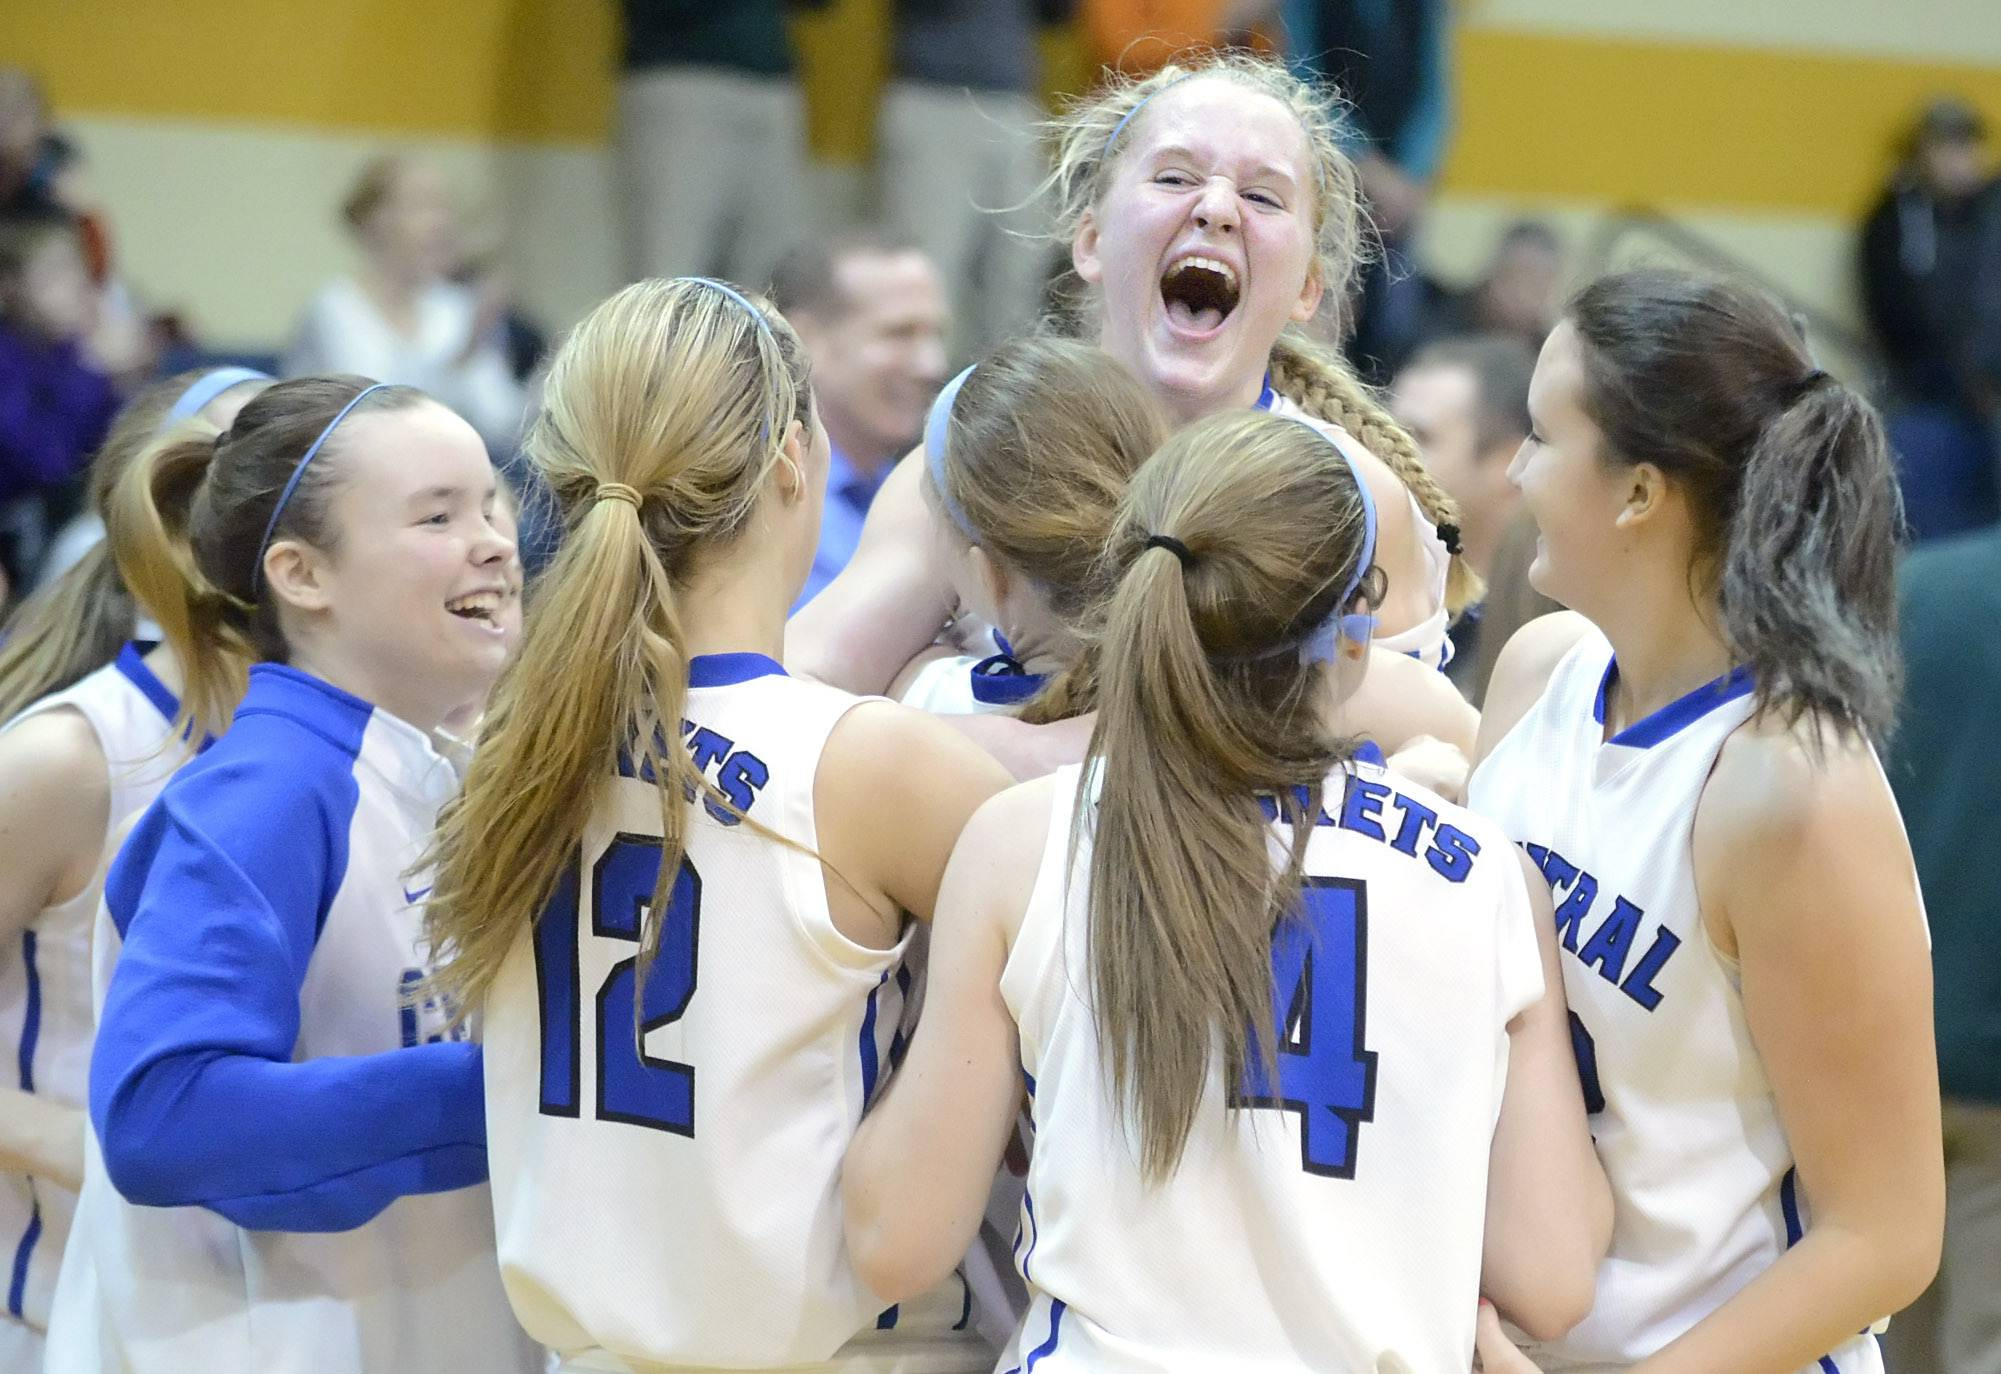 Burlington Central's Samantha Pryor screams as she leaps into the arms of teammates after the Rockets' win over St. Edward in the Class 3A regional championship game on Saturday in Aurora.